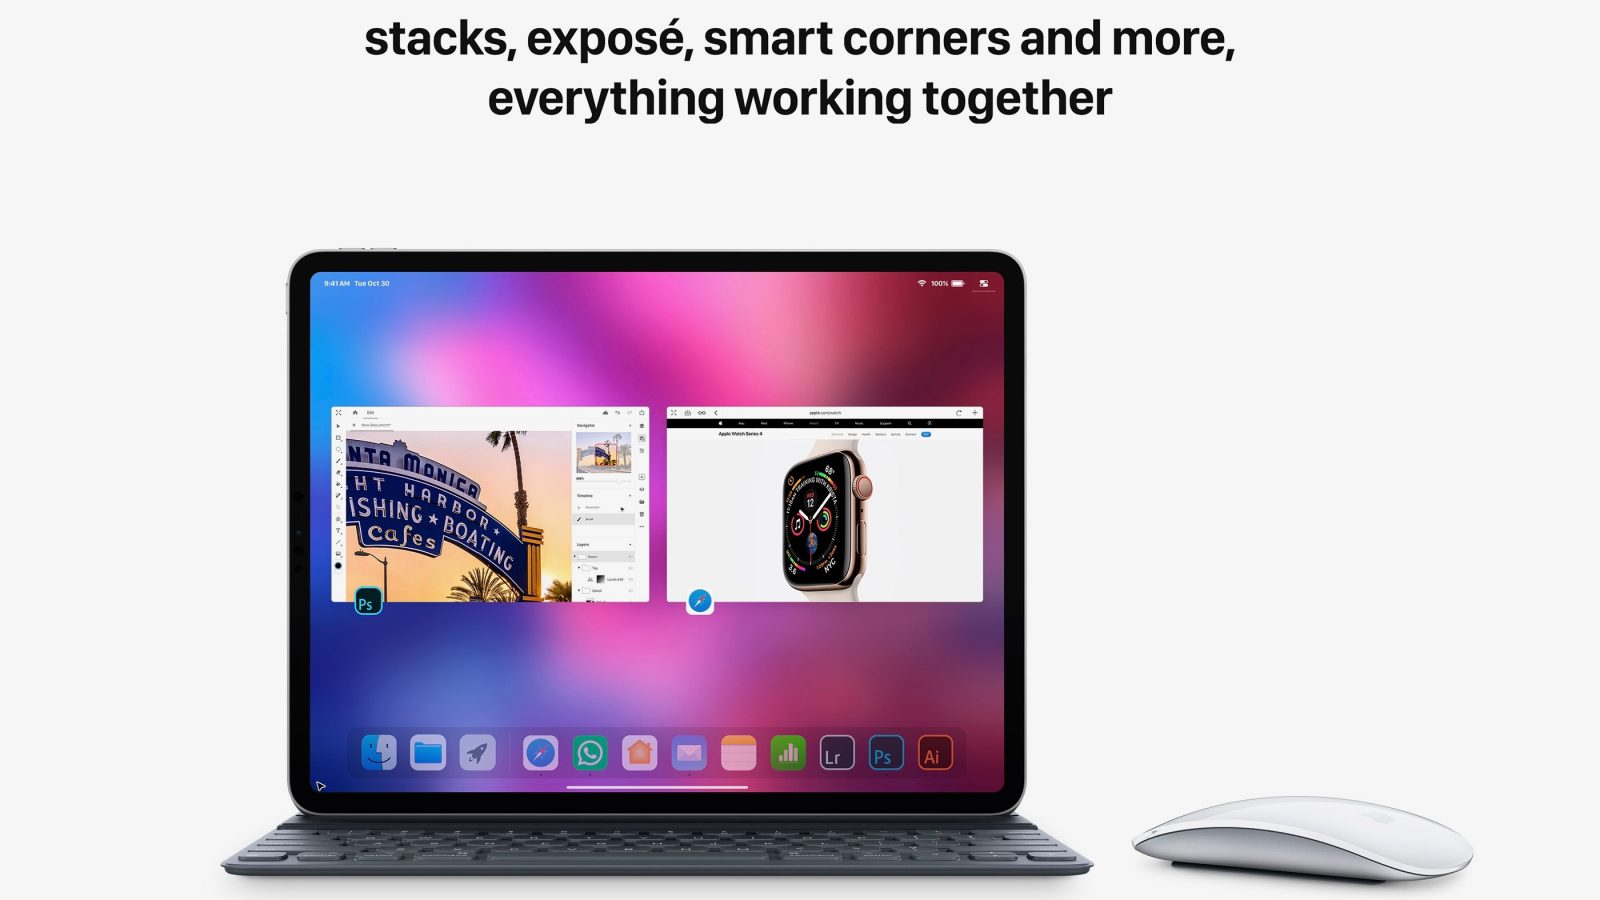 iOS 13 Concept Imagines Mouse Support, Enhanced Multitasking, More for iPad [Gallery]